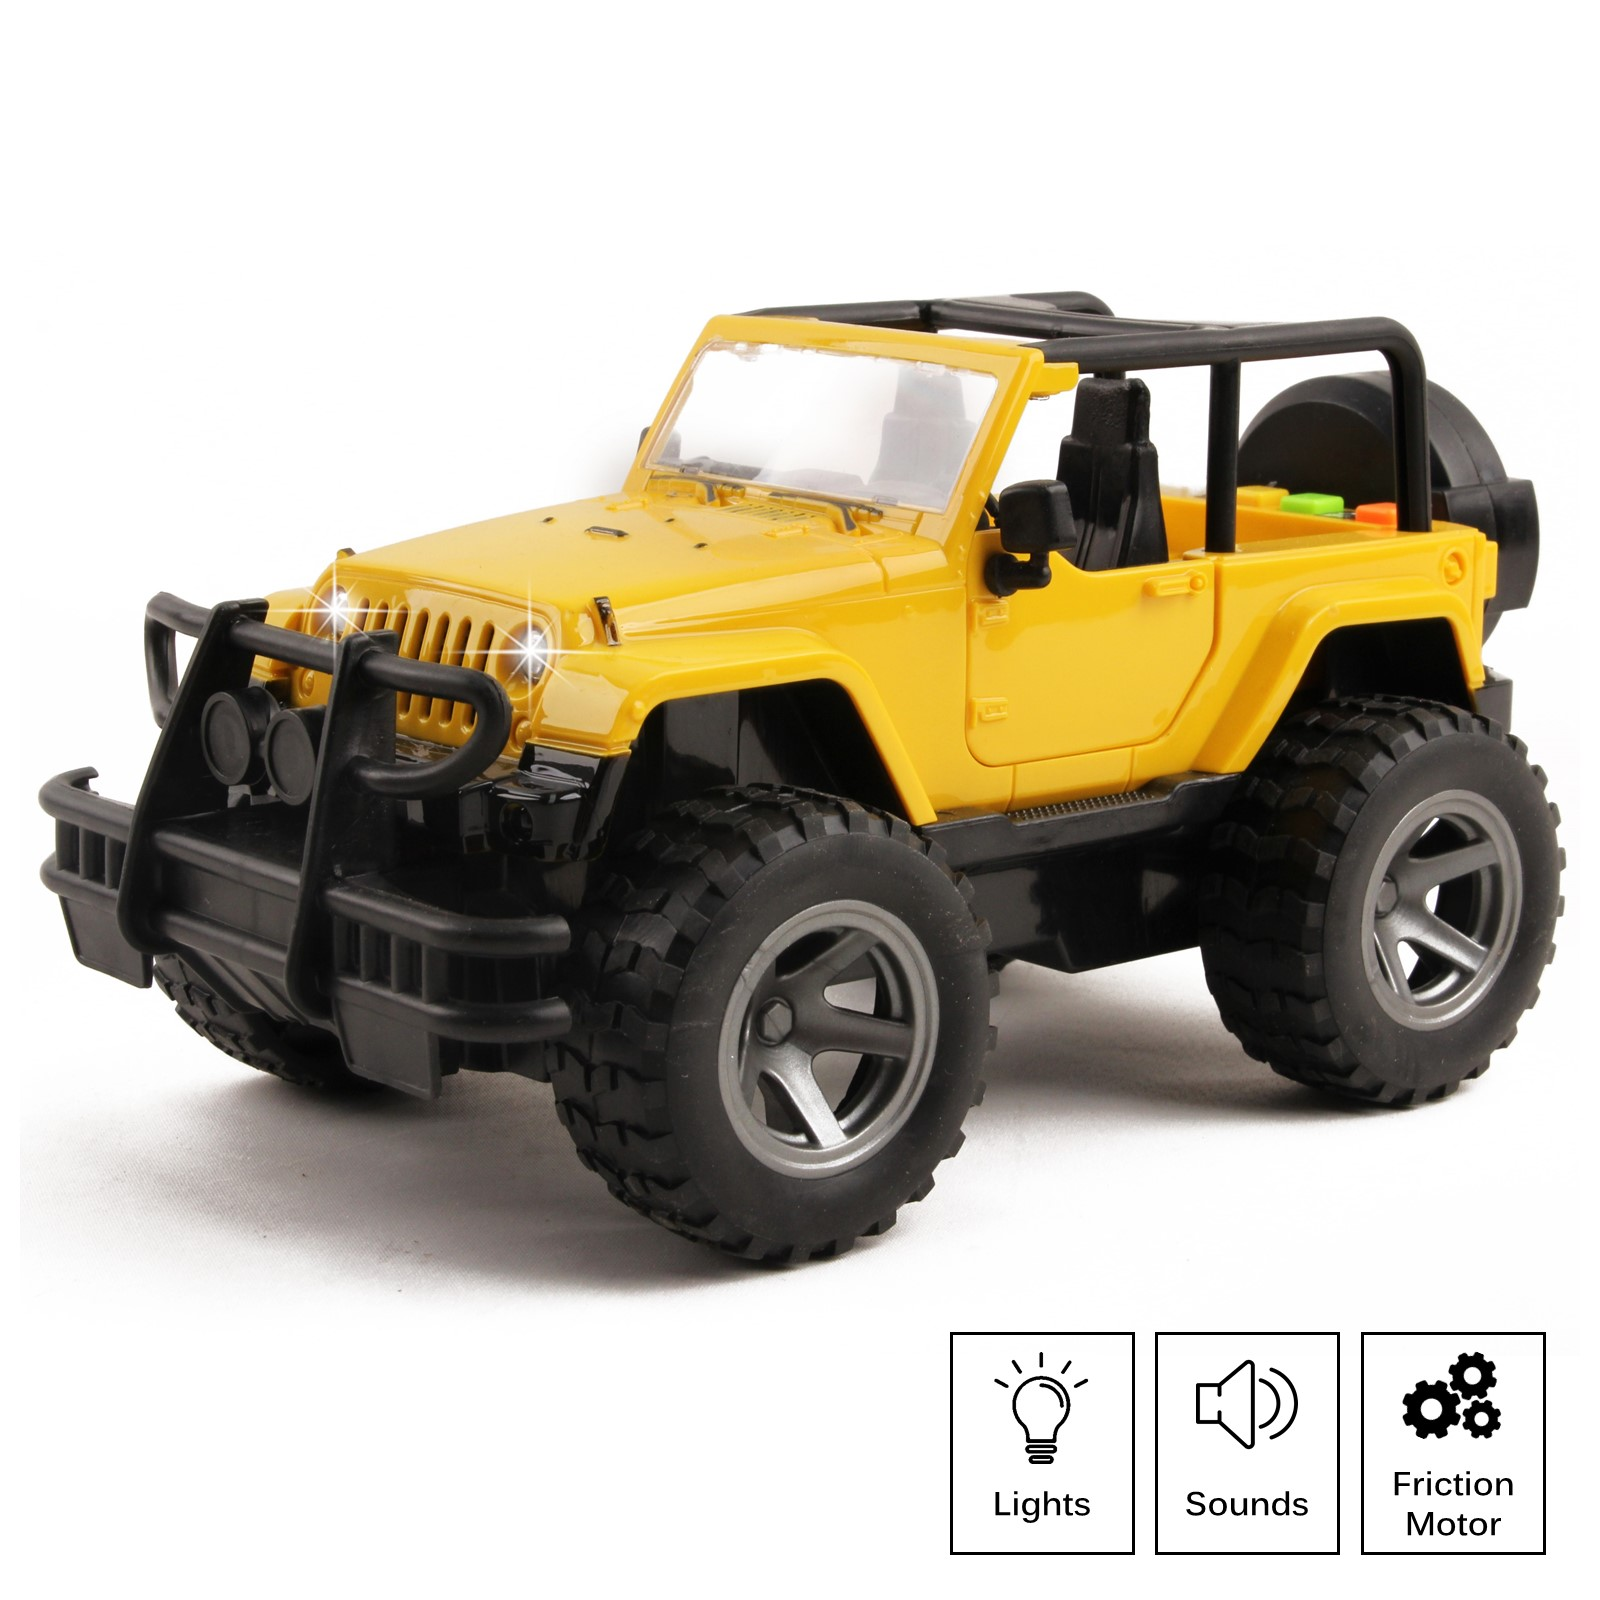 Off-Road Truck Friction Powered SUV 1:16 Scale With Lights And Sounds Doors Open Kids Push And Go Action Realistic Toy Vehicle Imagination Pretend Play Car Great Gift For Children Boys Girls